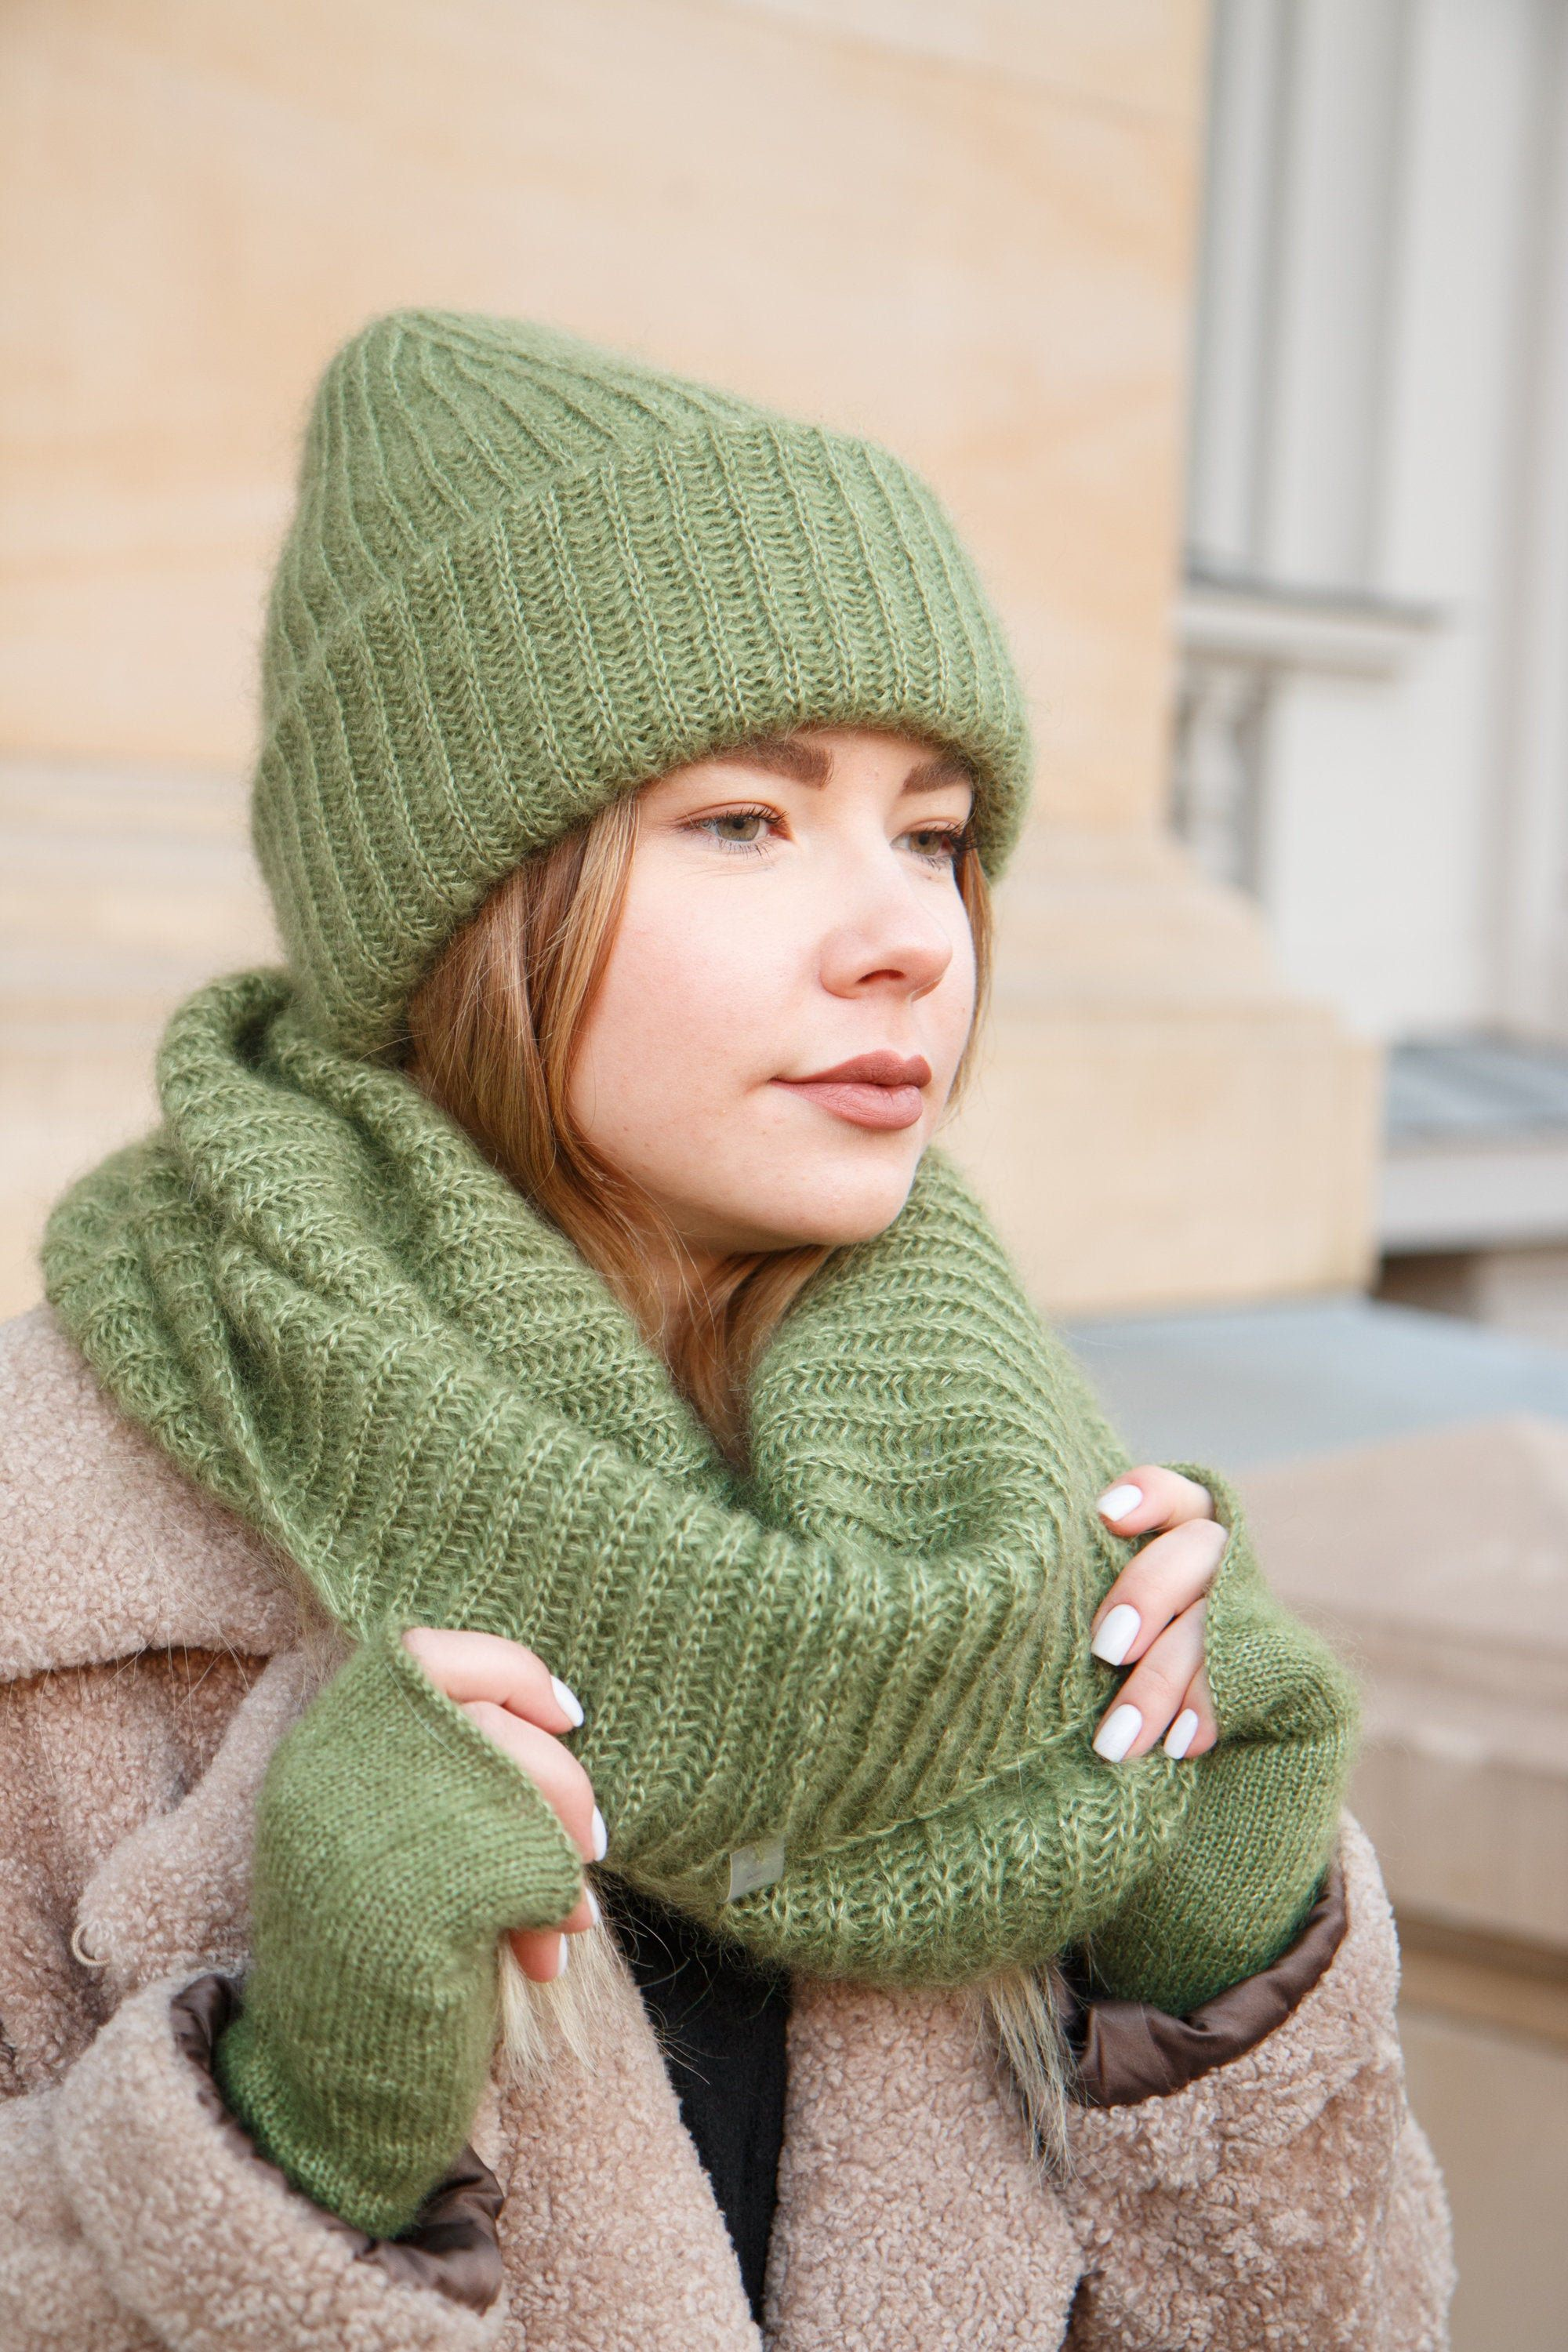 Chunky knitted hat Mohair silk winter beanie hat Cashmere oversize hat for women